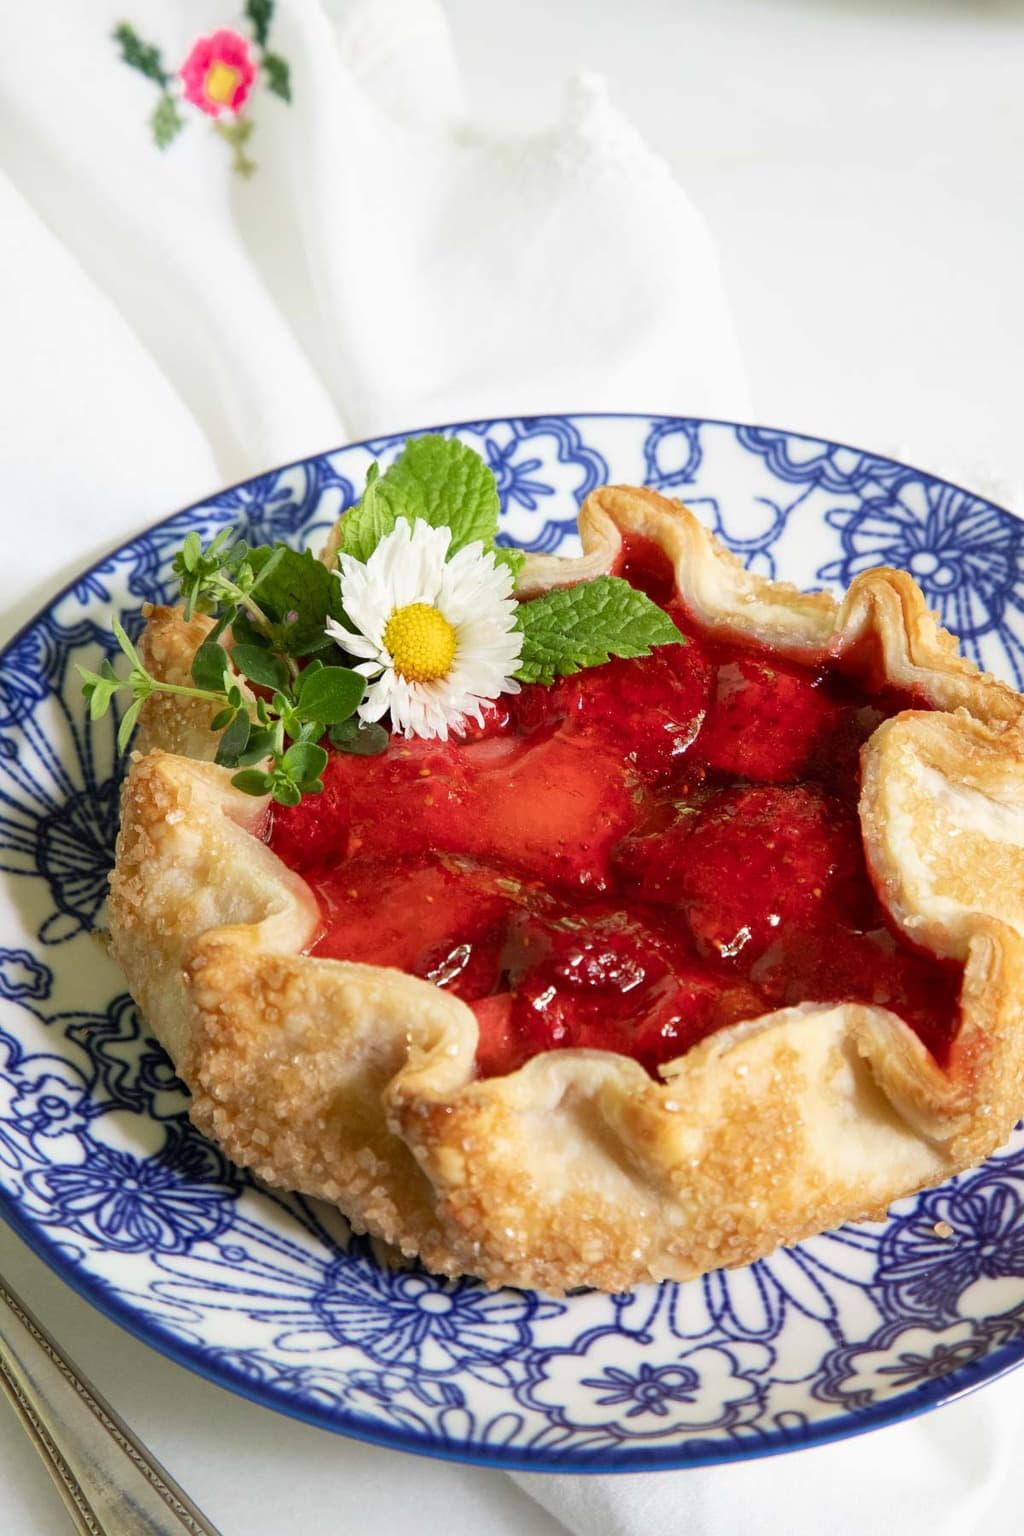 Vertical closeup photo of a Fresh Strawberry Galette on a blue and white patterned plate garnished with a wild daisy and fresh mint leaves.